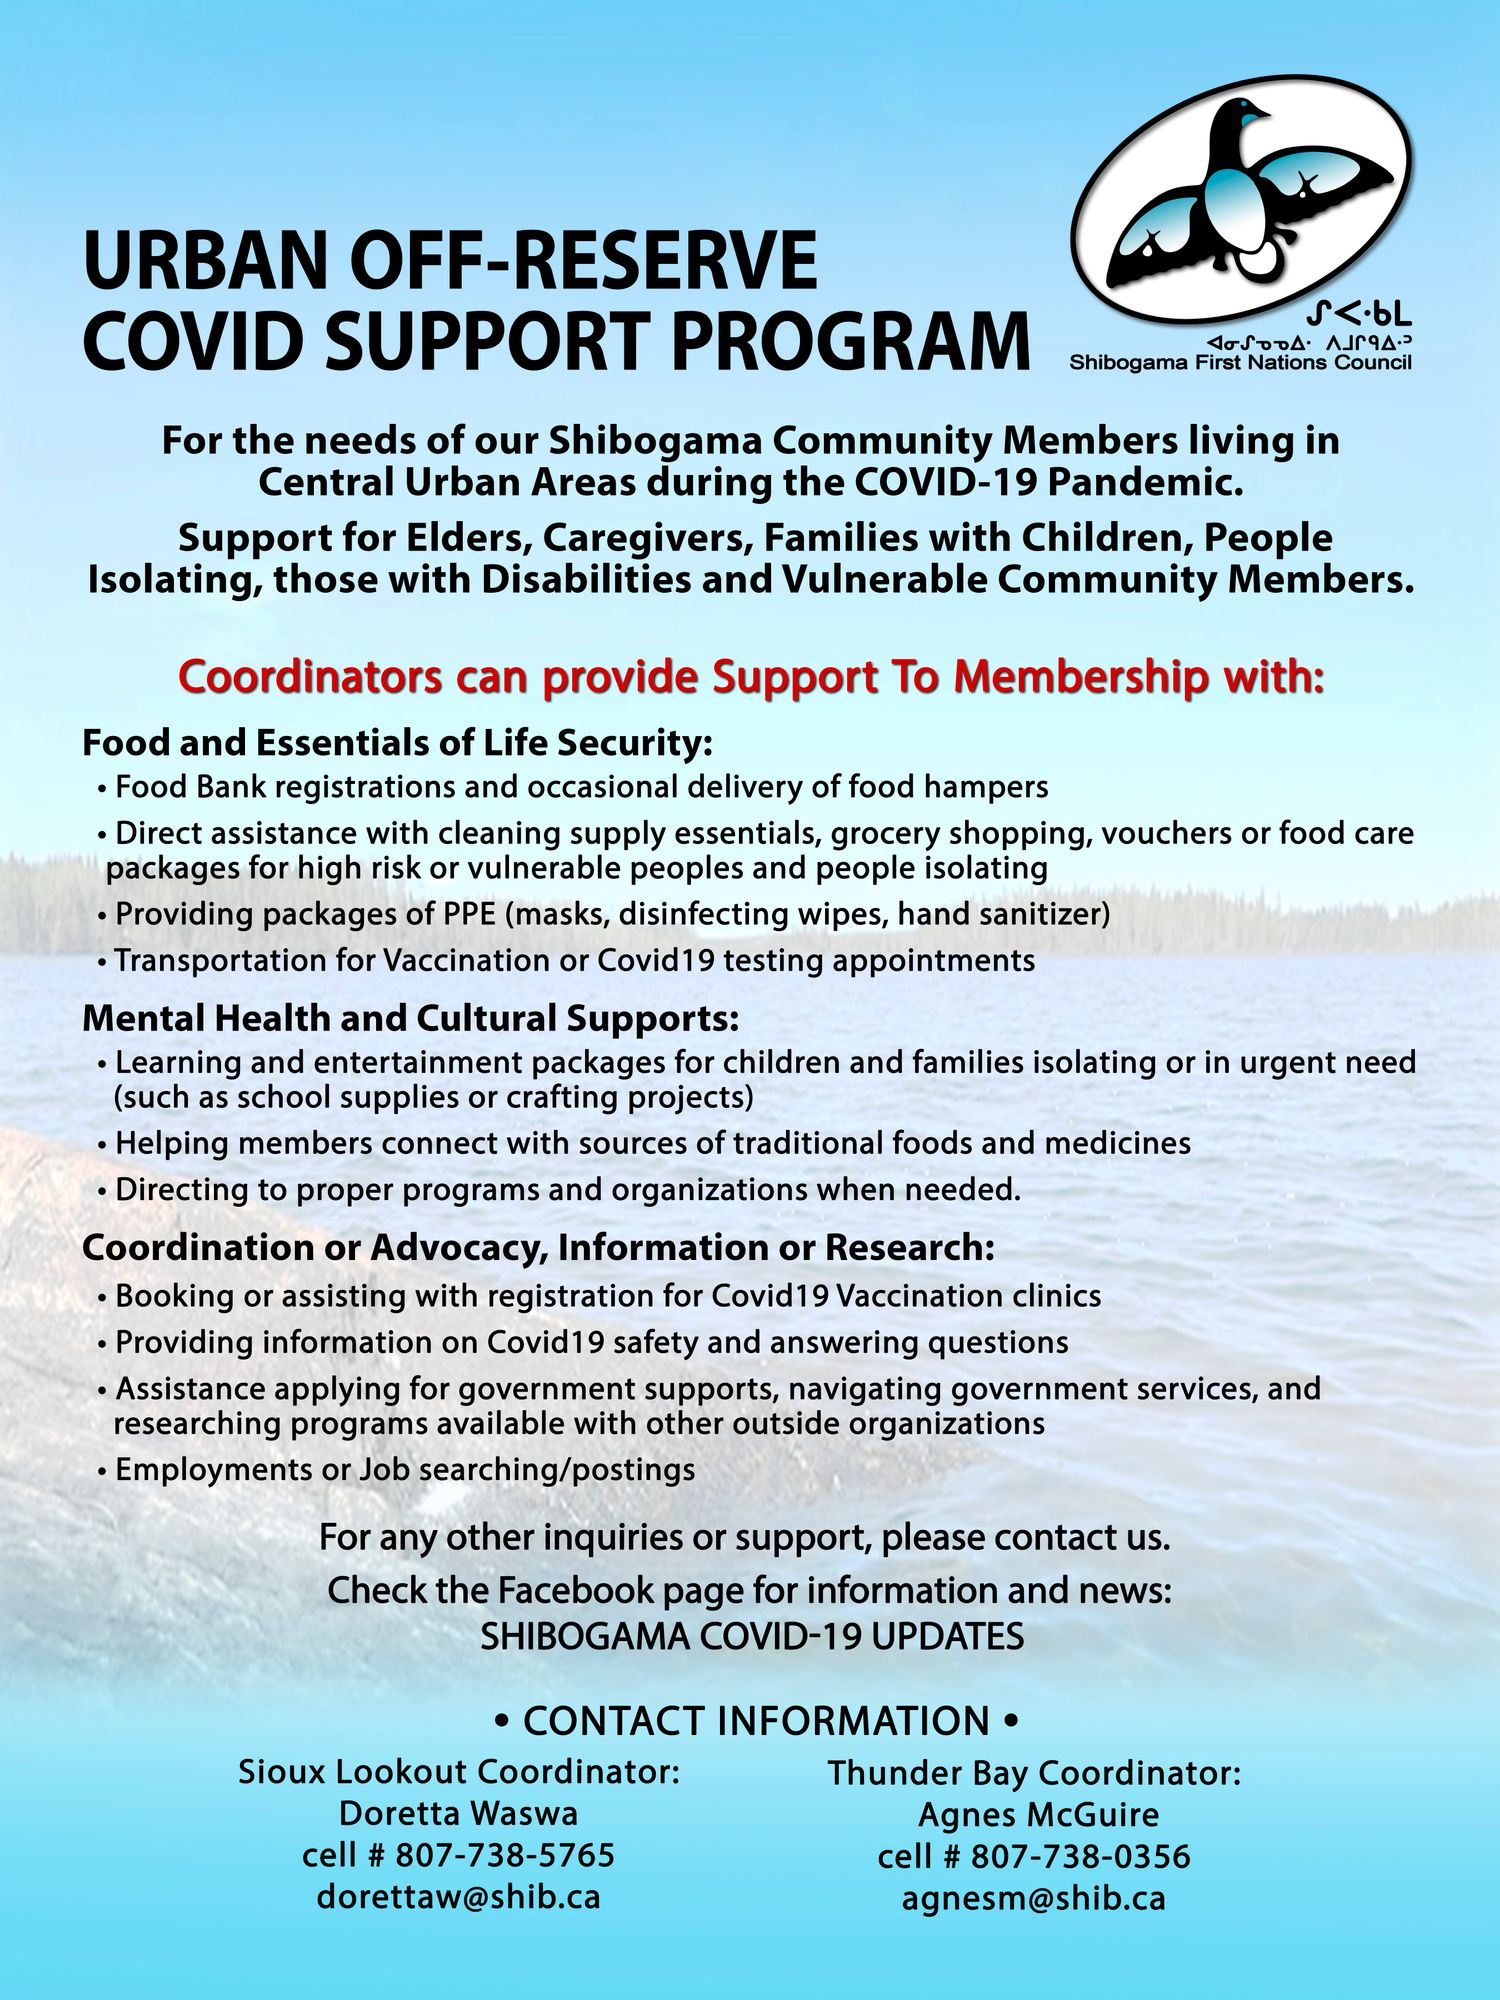 Urban Off-Reserve COVID Support Program poster